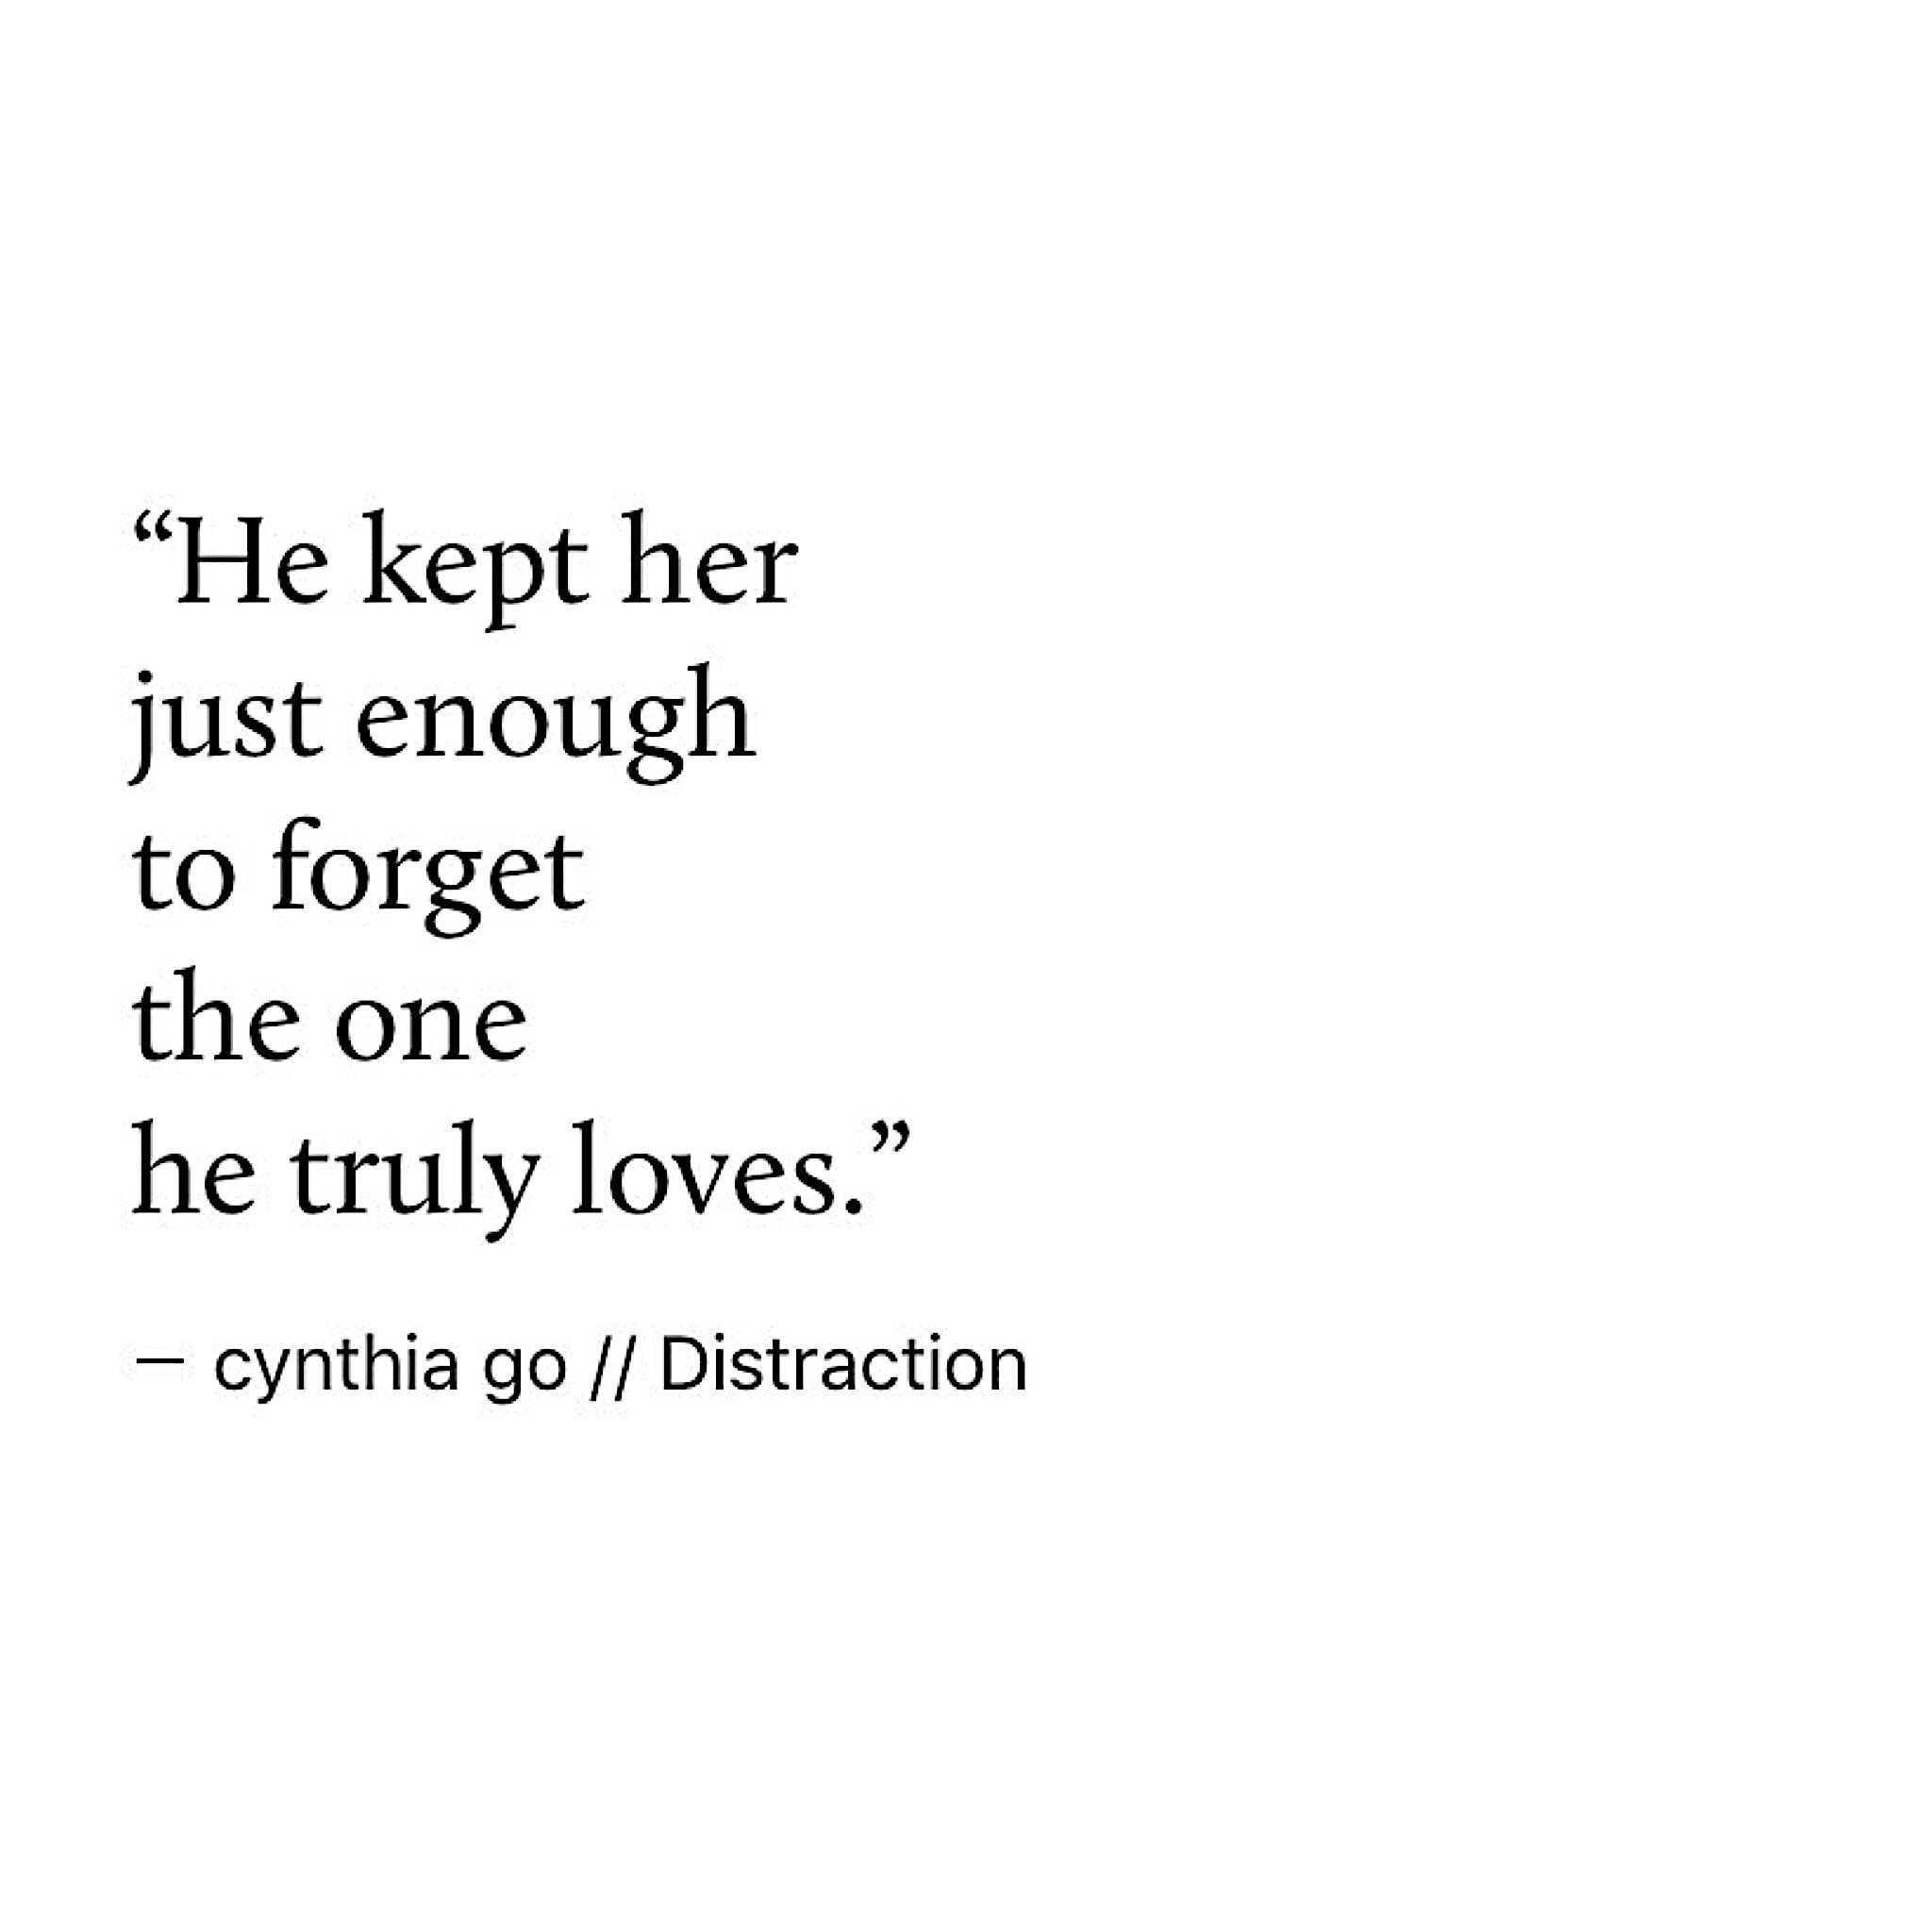 Distraction   Poetic   Quotes, Quotes about moving on, Cynthia go